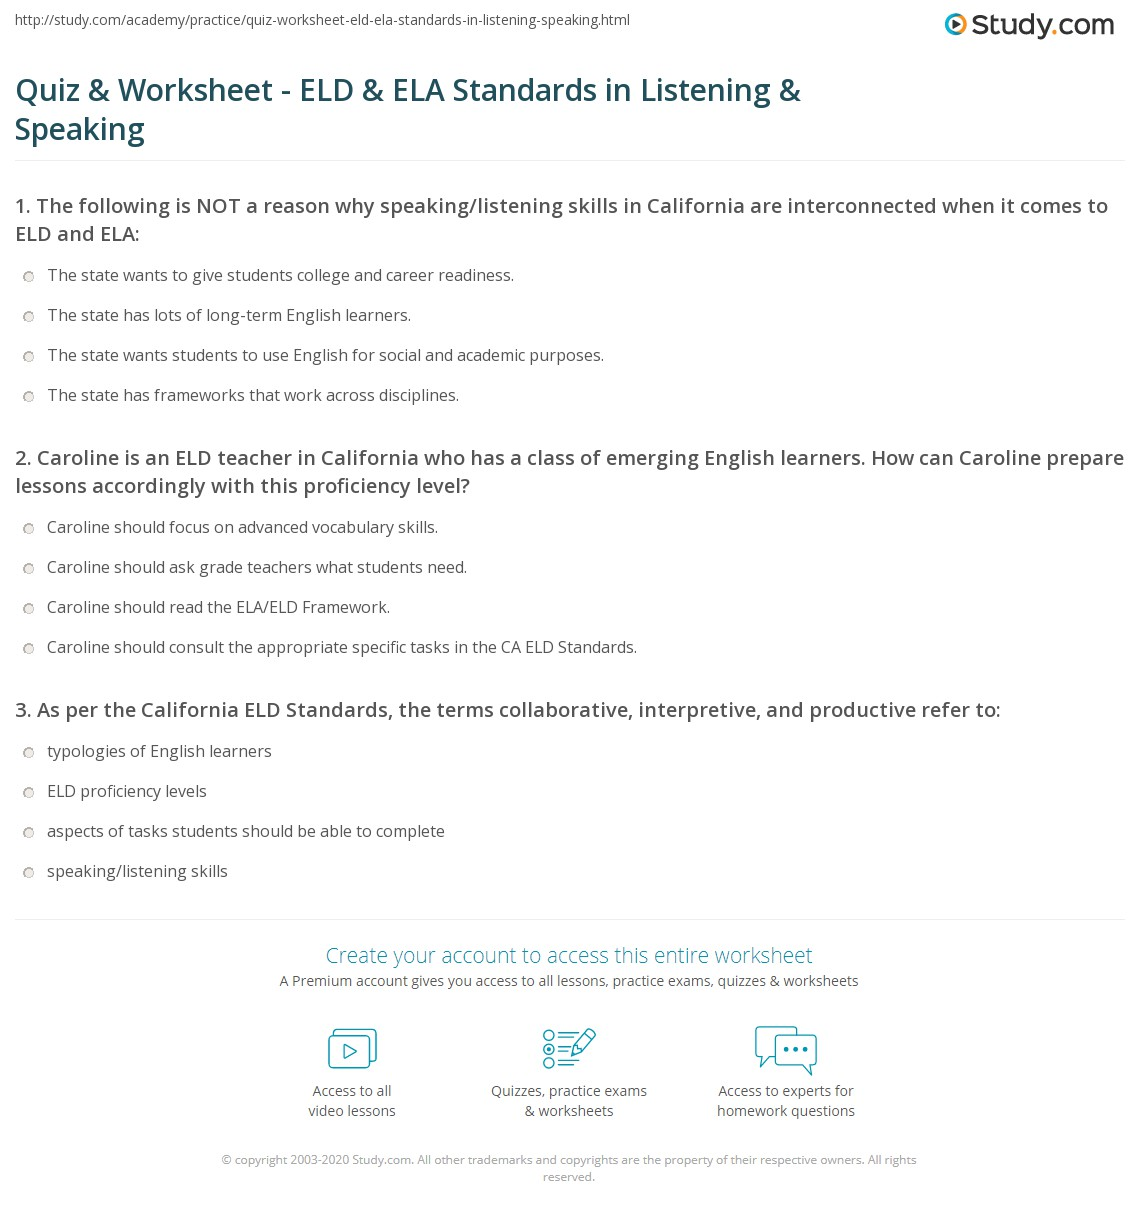 Quiz & Worksheet - ELD & ELA Standards in Listening